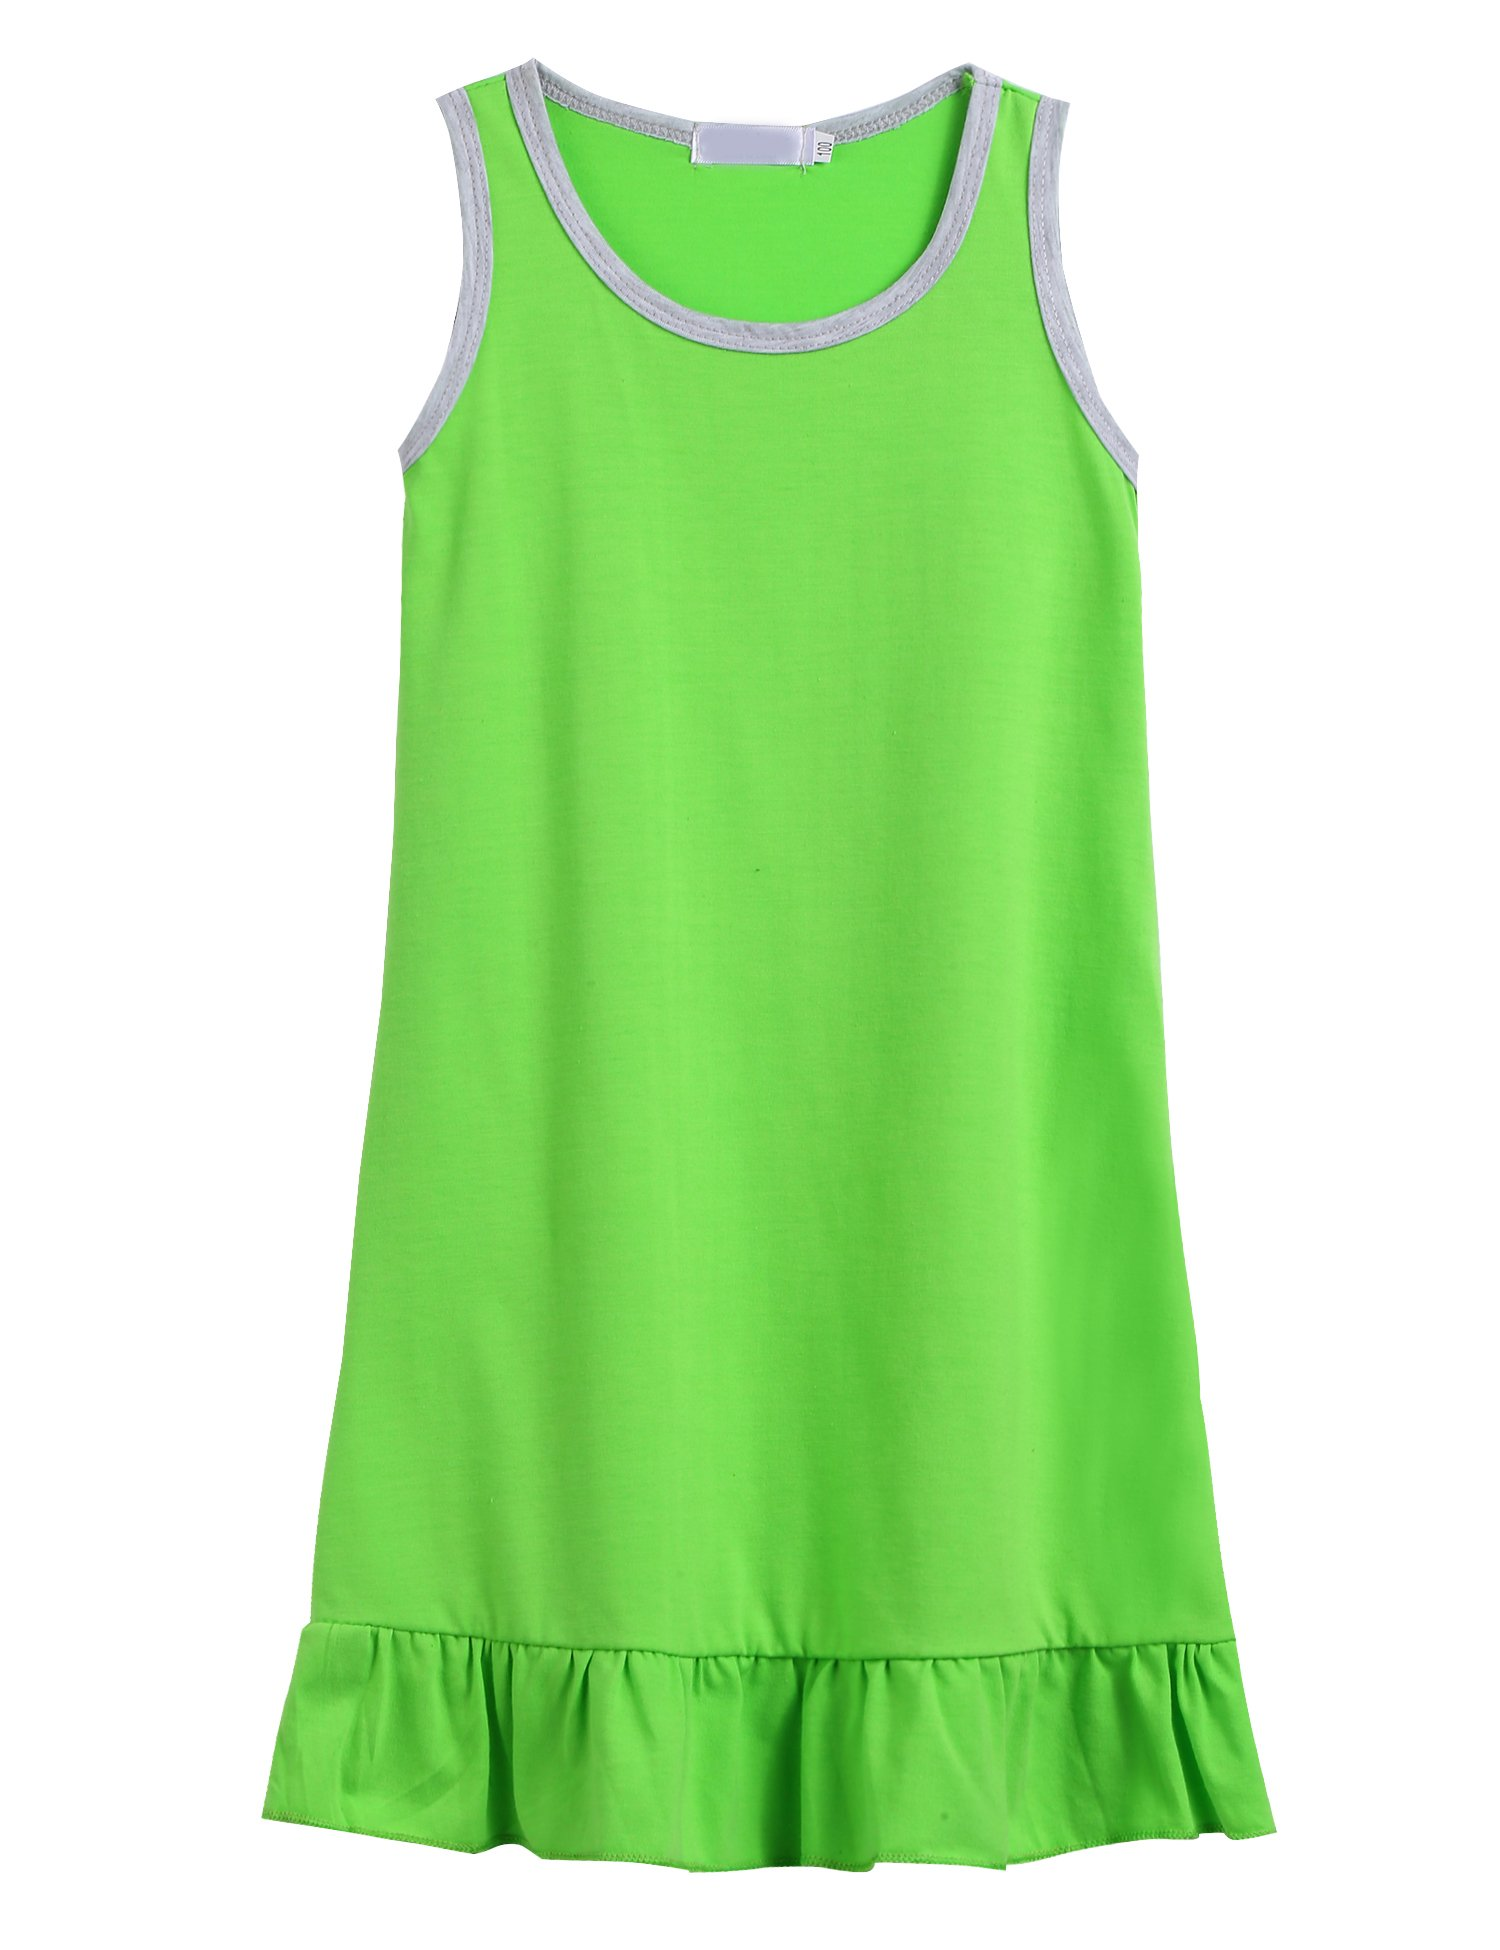 Balasha Girls Sleeveless Tank Pleated Solid Color Summer Dress, Pale Green, 120(Age for 6-7 years)